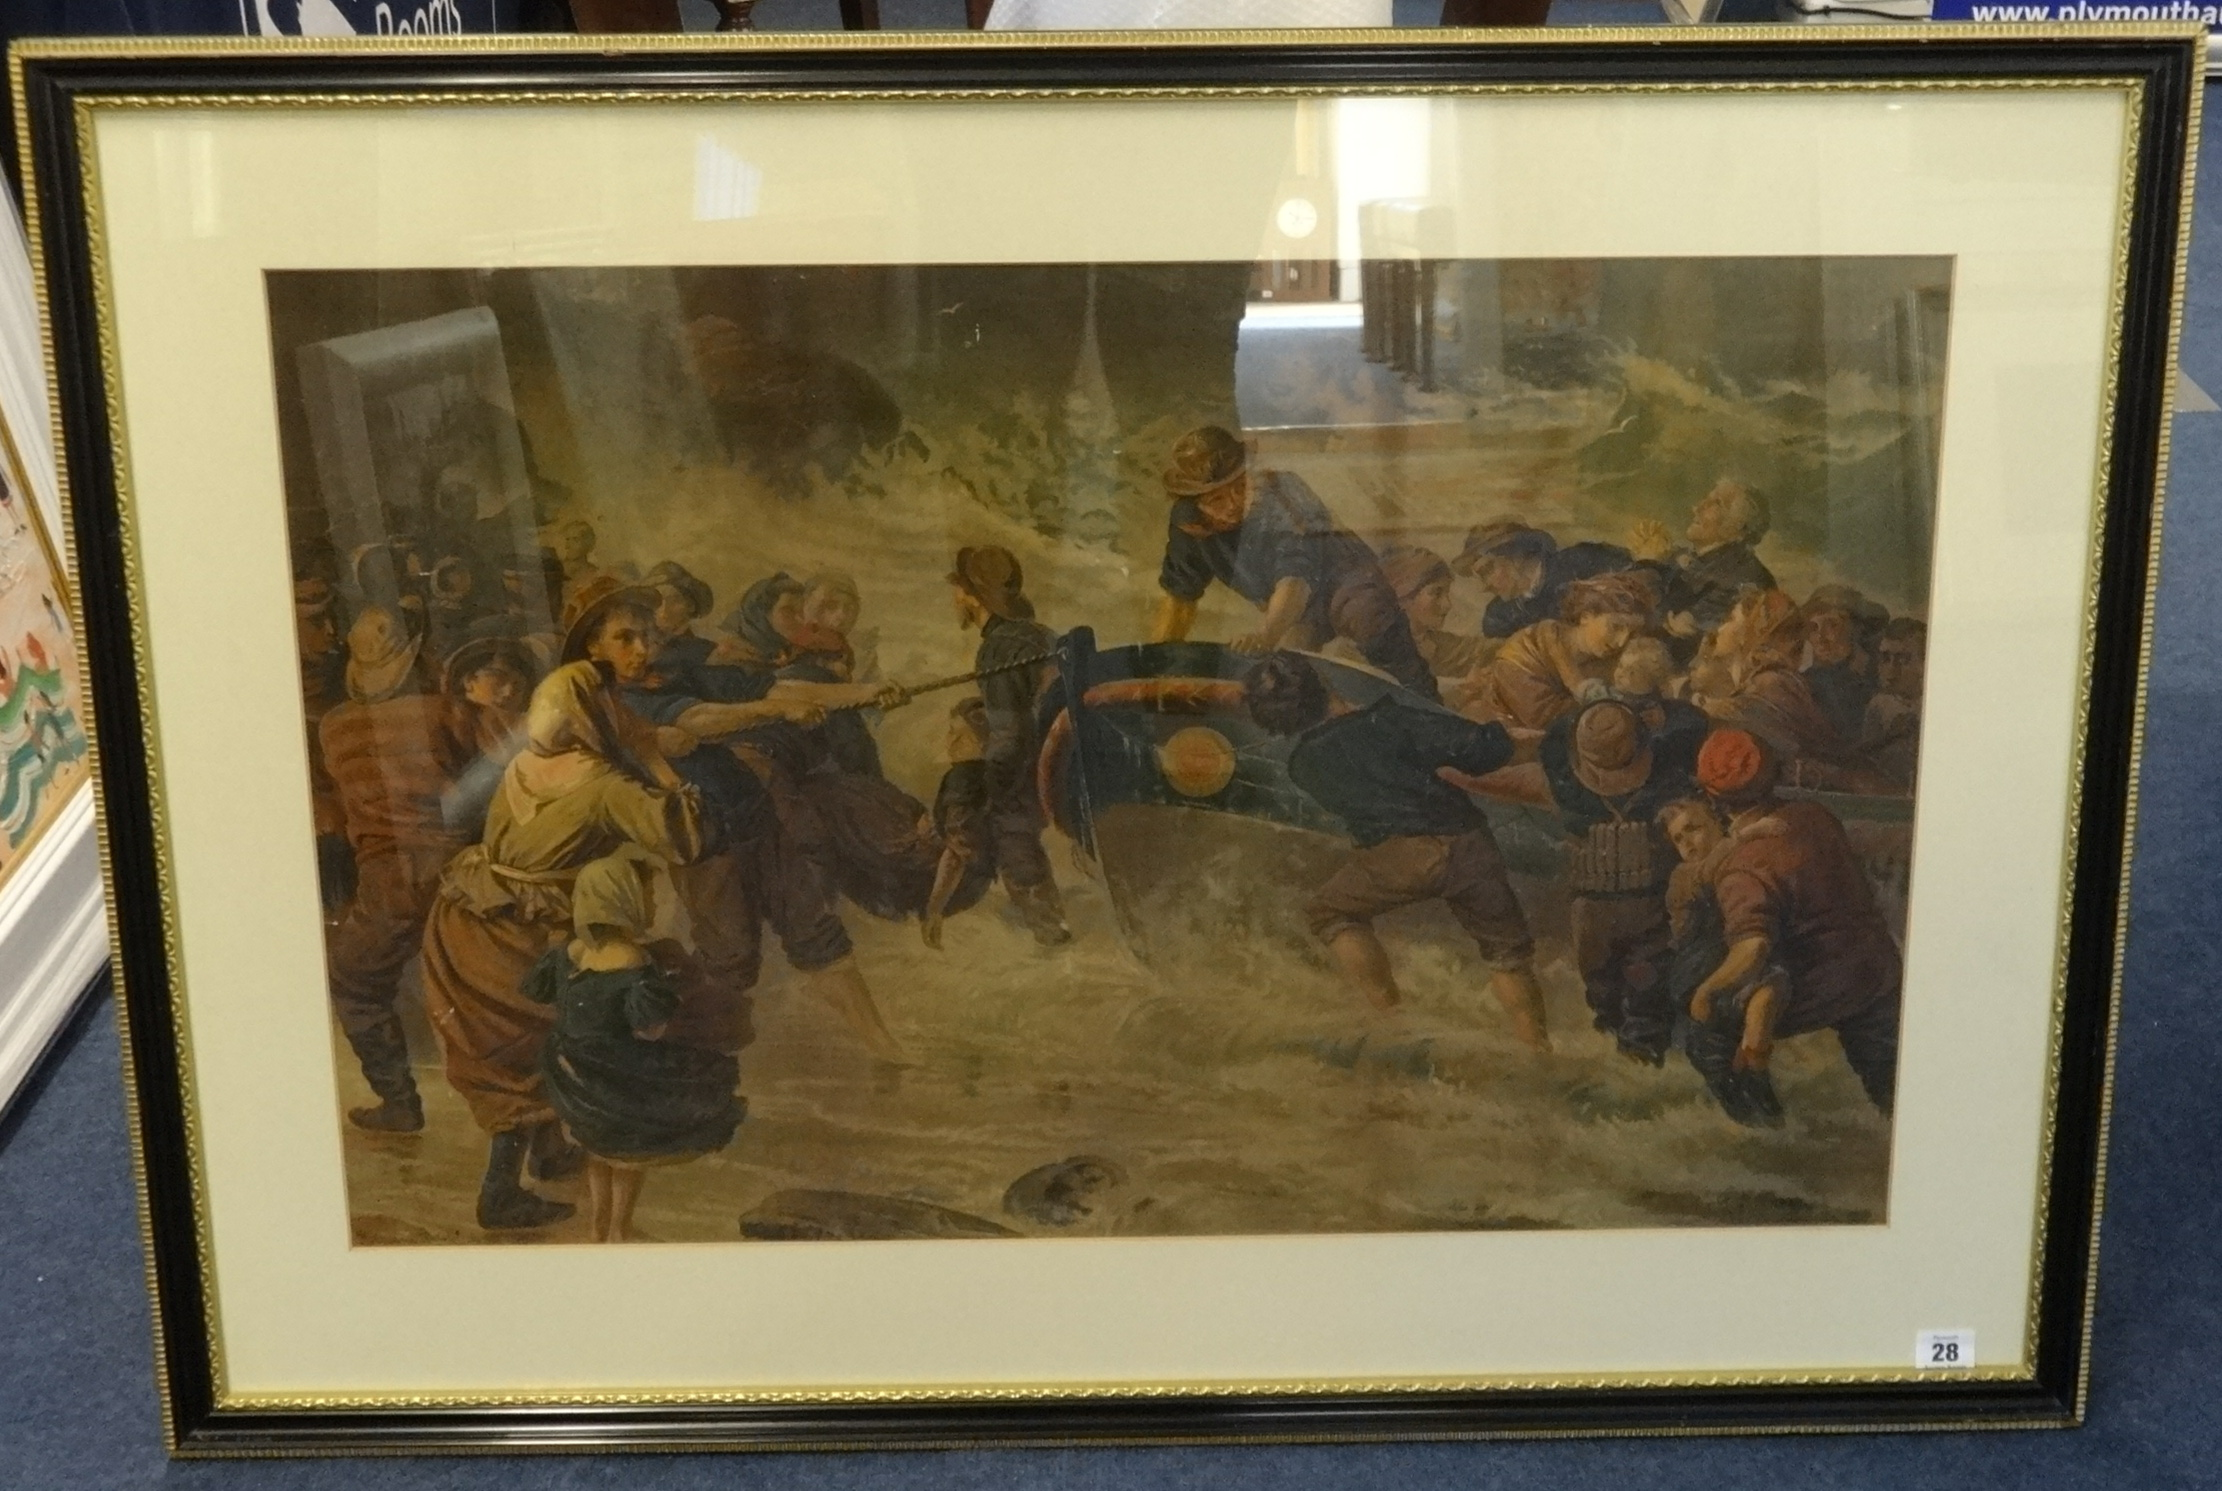 Lot 028 - G.Hook? A pair of 19th Century prints of dramatic sea rescues, overall size 72cm x 100cm.